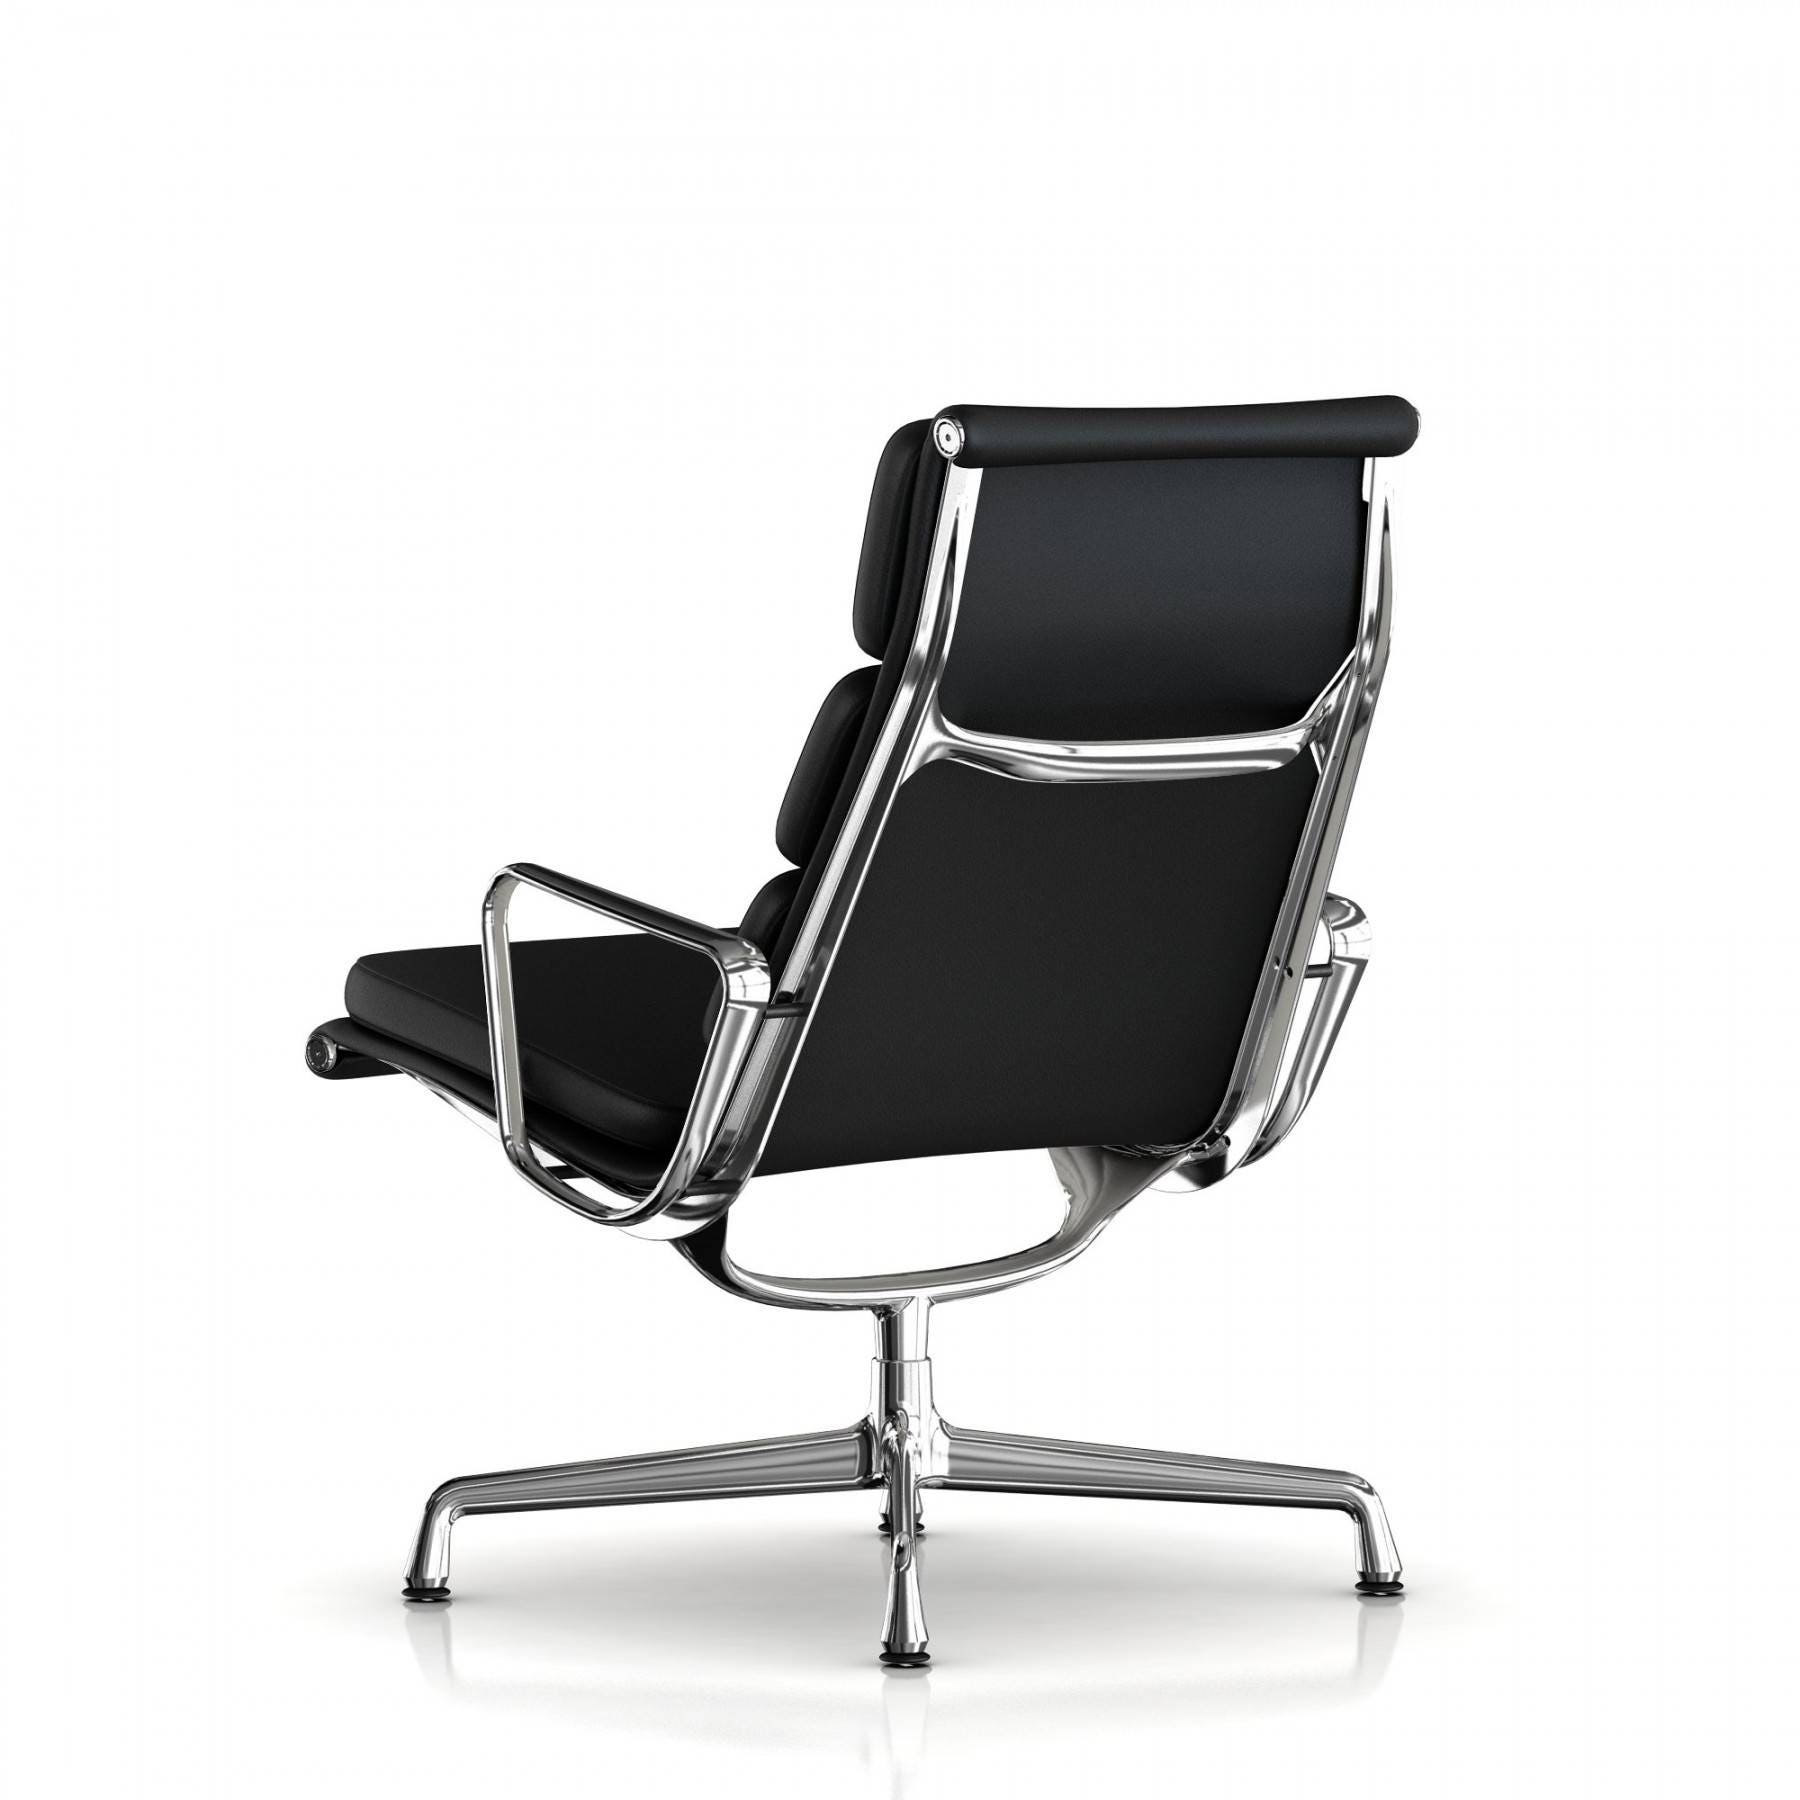 Eames Soft Pad Lounge Chair herman miller eames® soft pad chair - lounge chair - gr shop canada